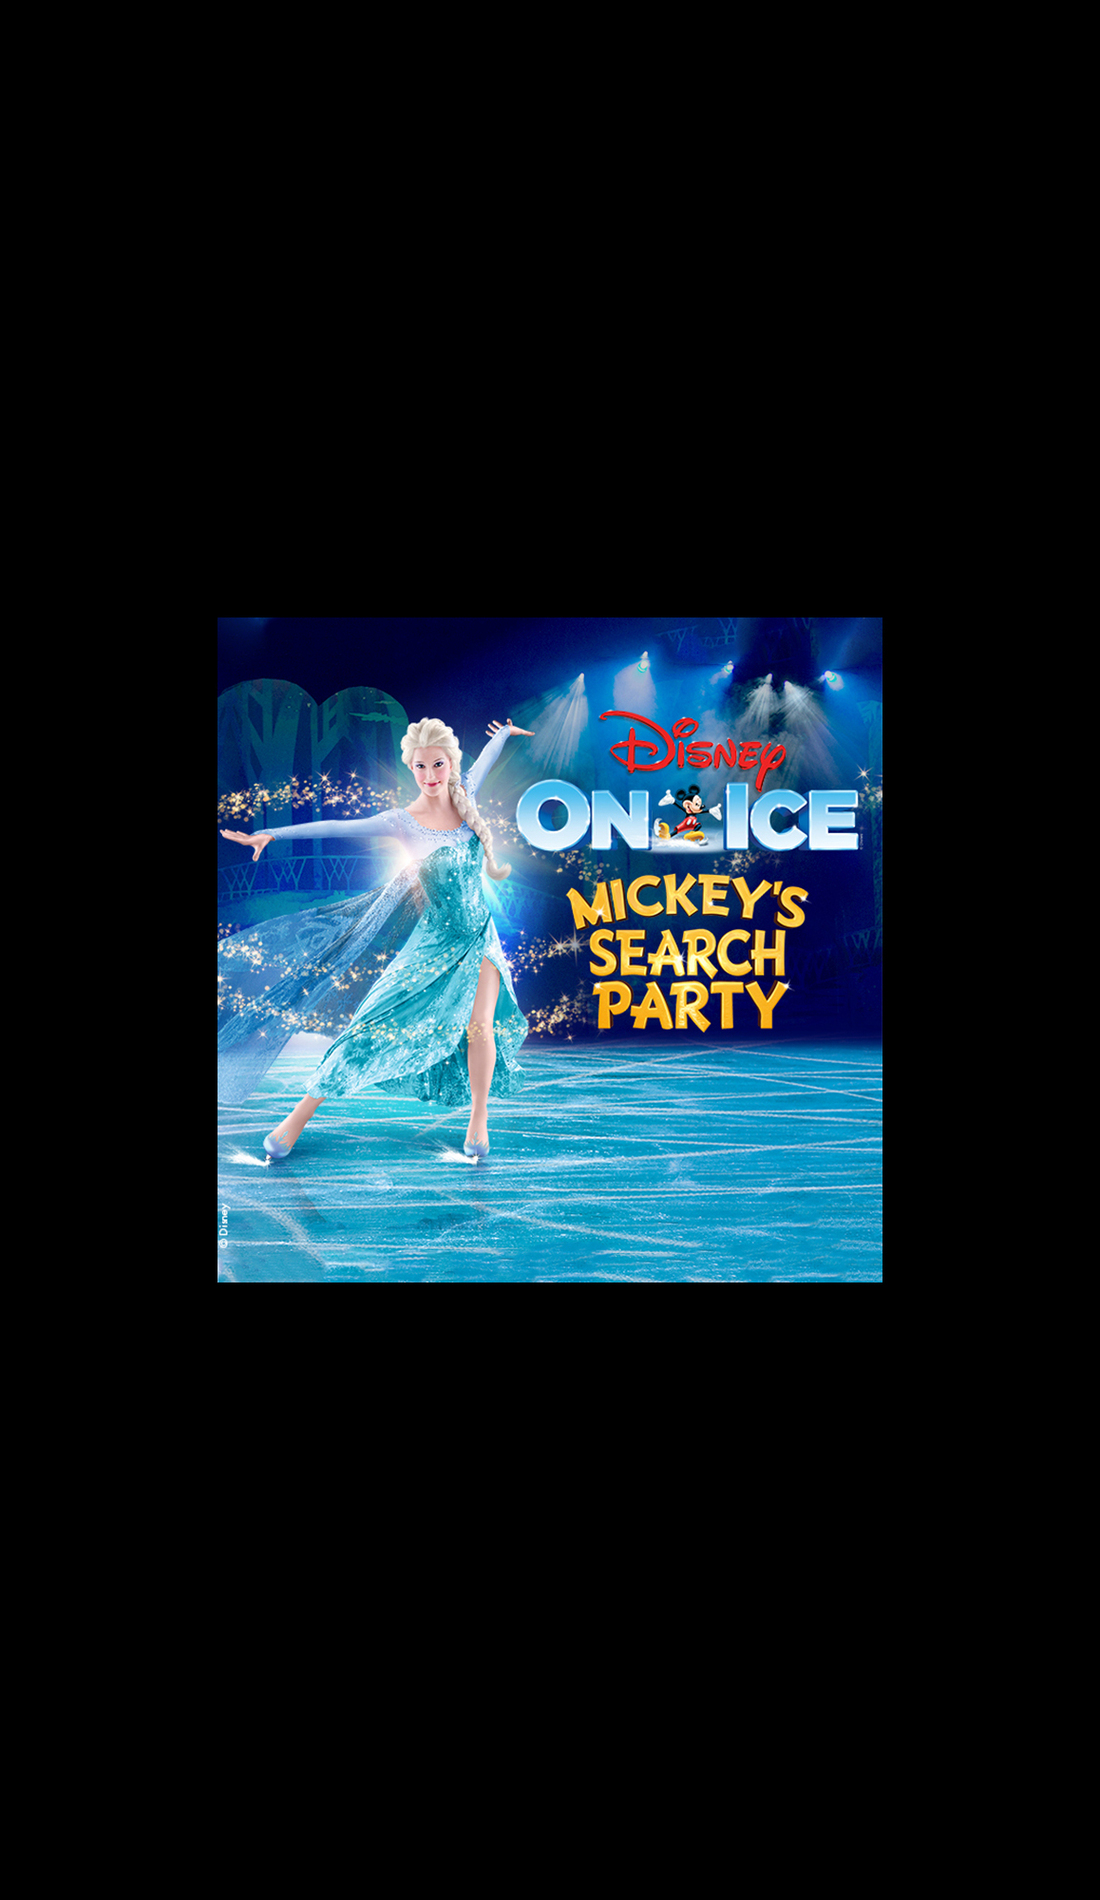 A Disney On Ice: Mickey's Search Party live event